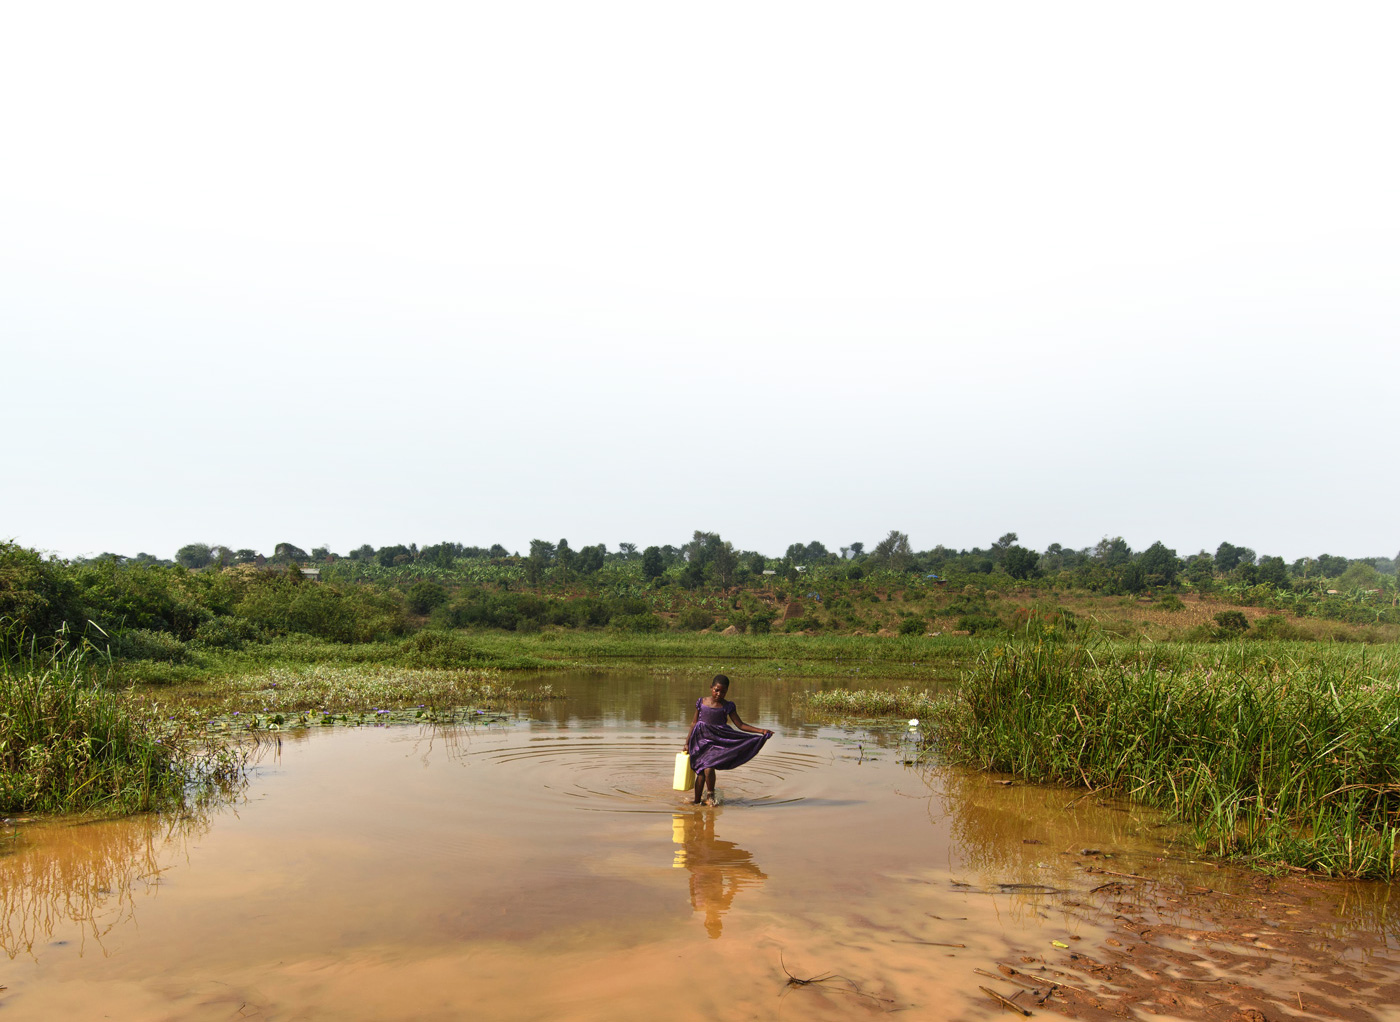 A little girl in a purple dress collecting water from a dirty water source